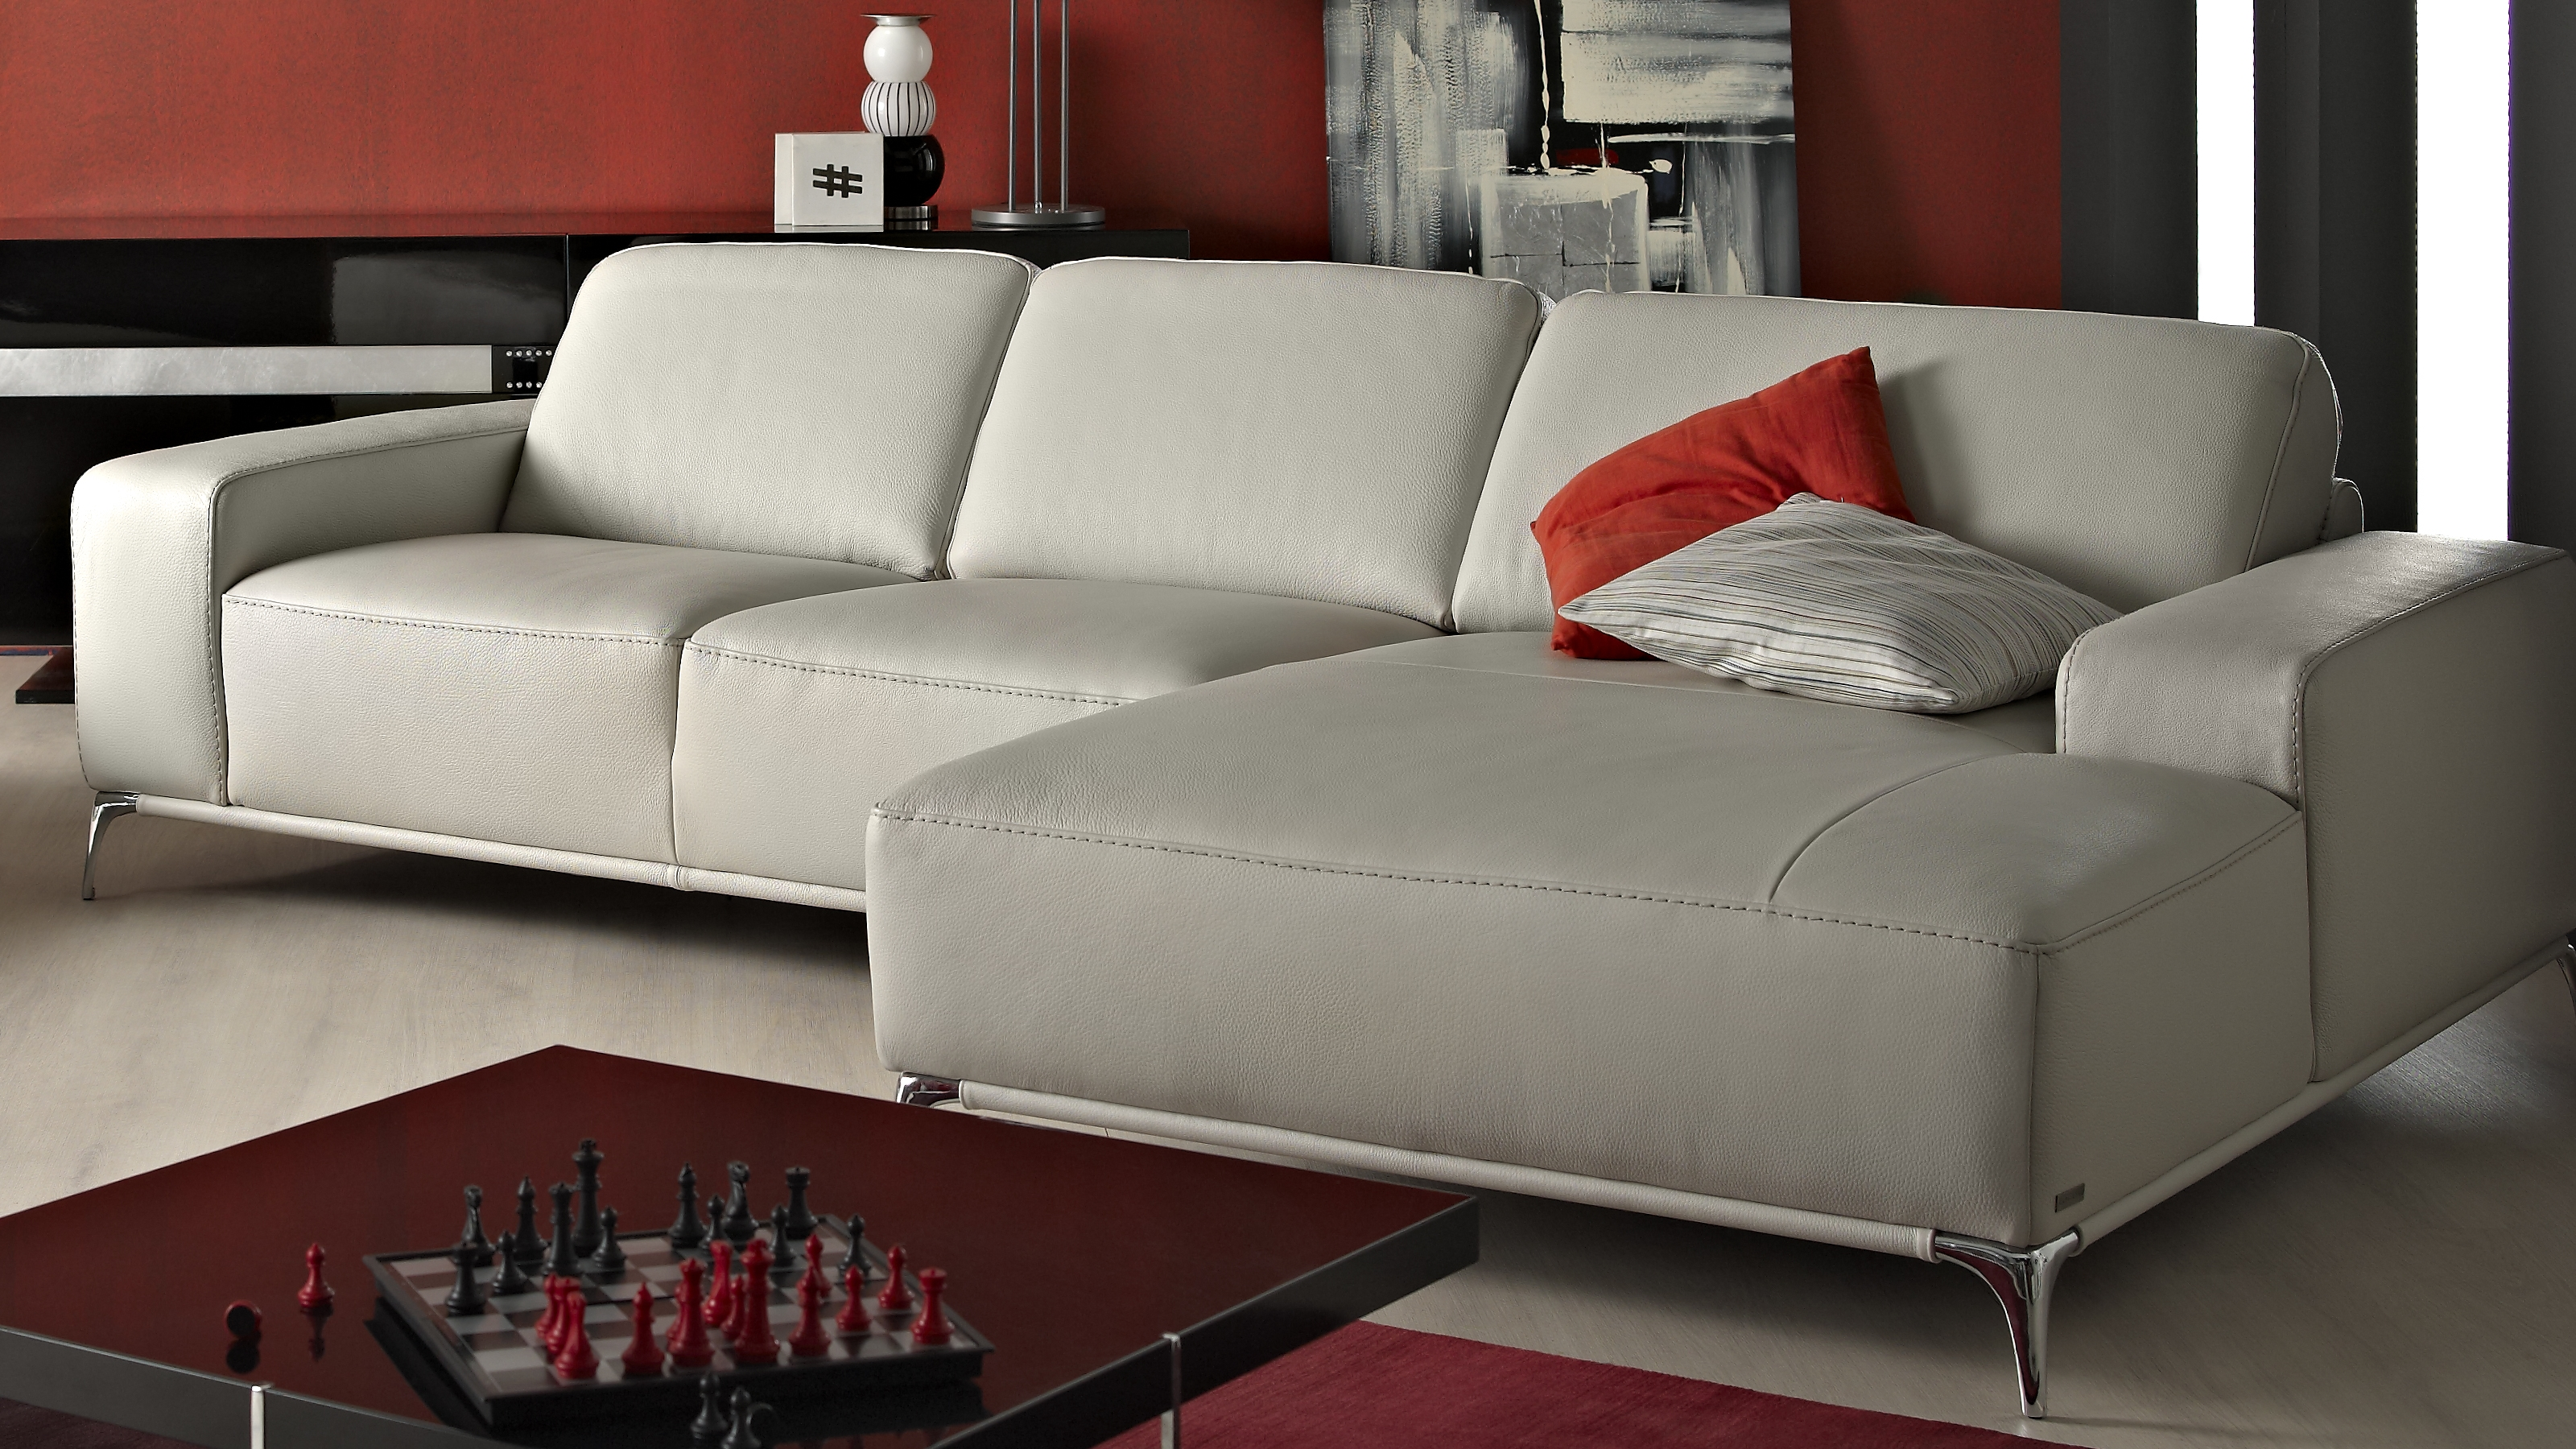 Saporini artemi full leather 2 5 seater sofa with chaise for 2 5 seater sofa with chaise